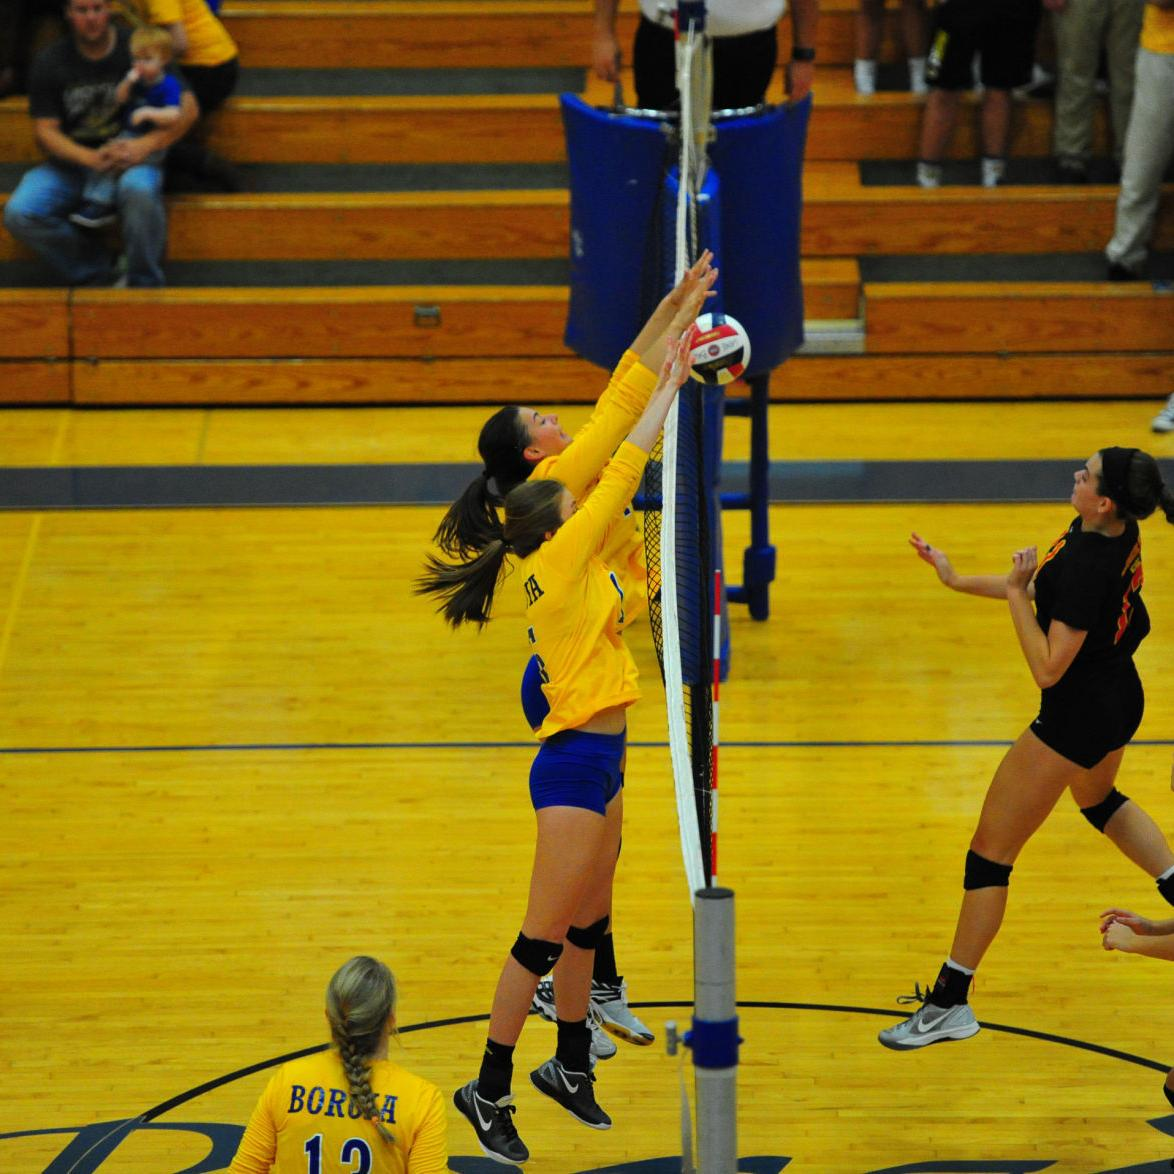 Sectional Volleyball — Incarnate Word at Borgia